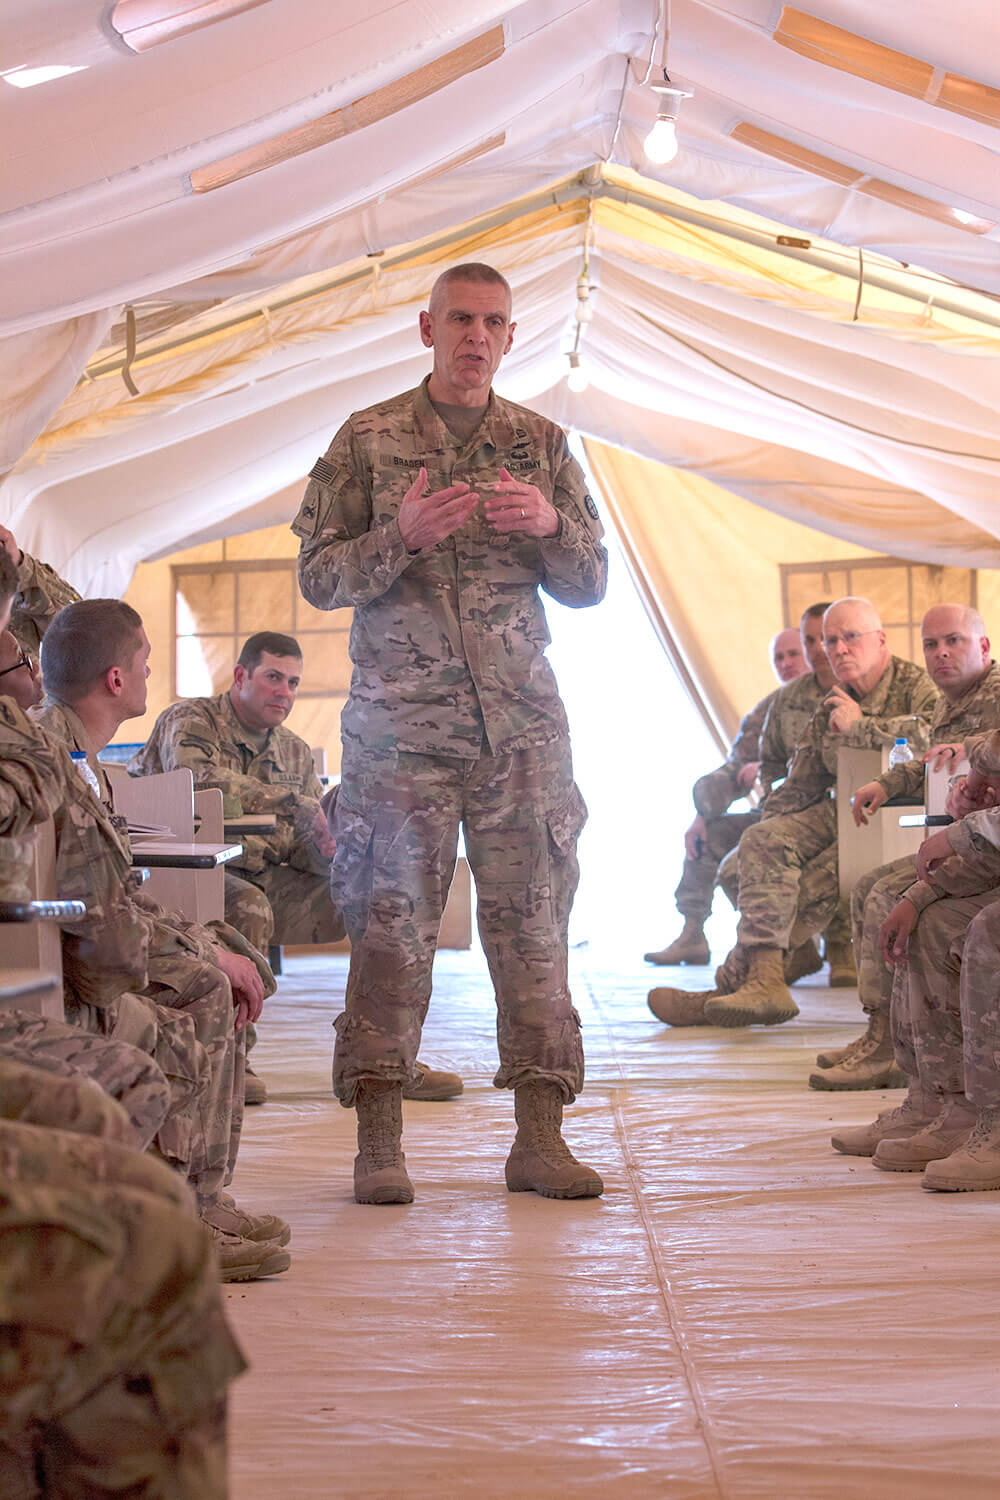 MG Victor J. Braden, commanding general, 35th Infantry Division, briefs Soldiers during Iron Union 18-6 in the United Arab Emirates, Jan. 23, 2018. U.S. Army photo by SGT Thomas X. Crough